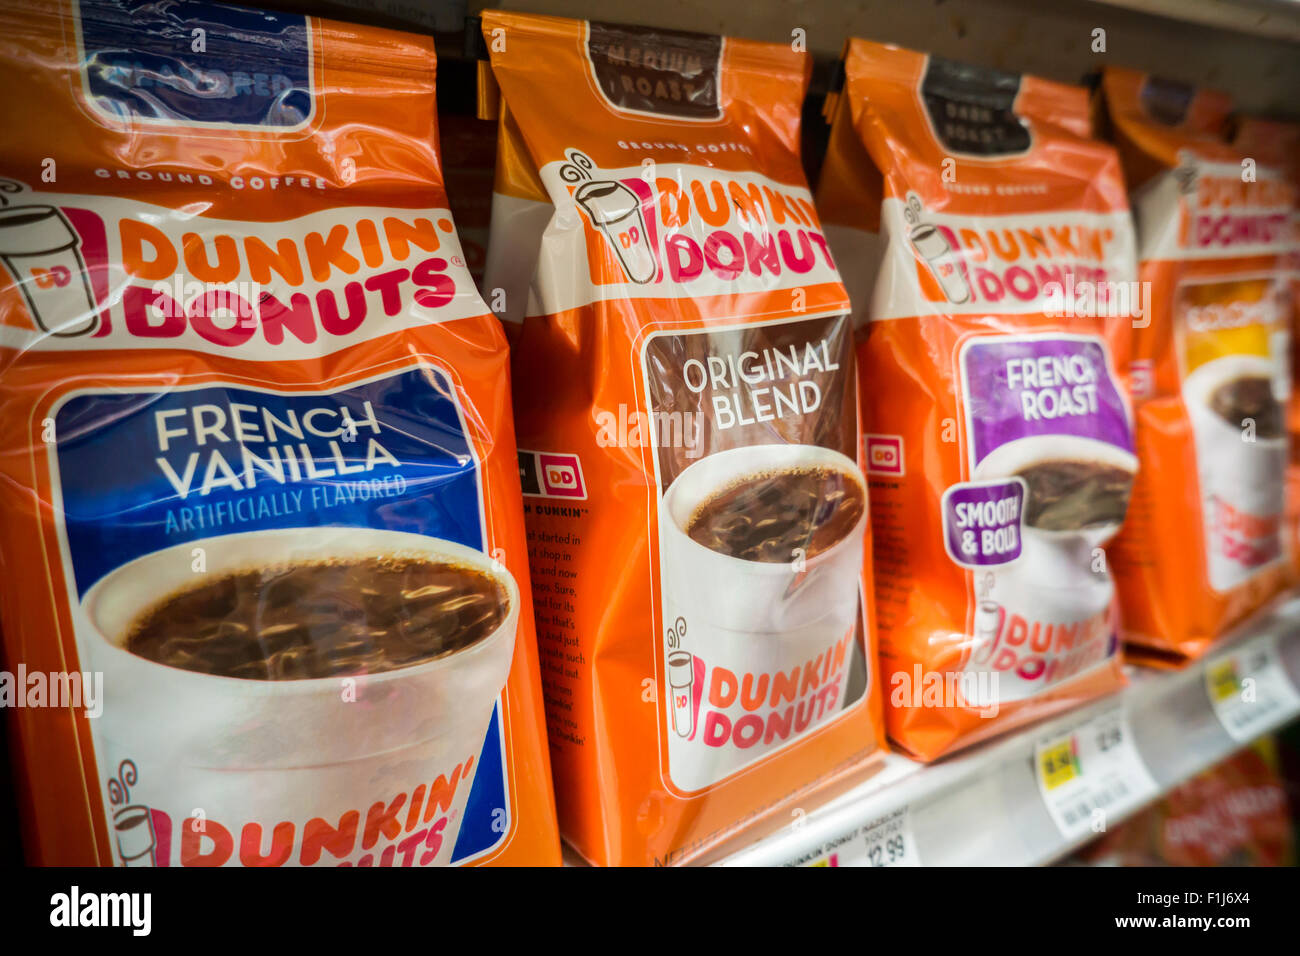 folgers coffee stock photos folgers coffee stock images alamy a display of dunkin donuts coffee on a supermarket shelf in new york on saturday